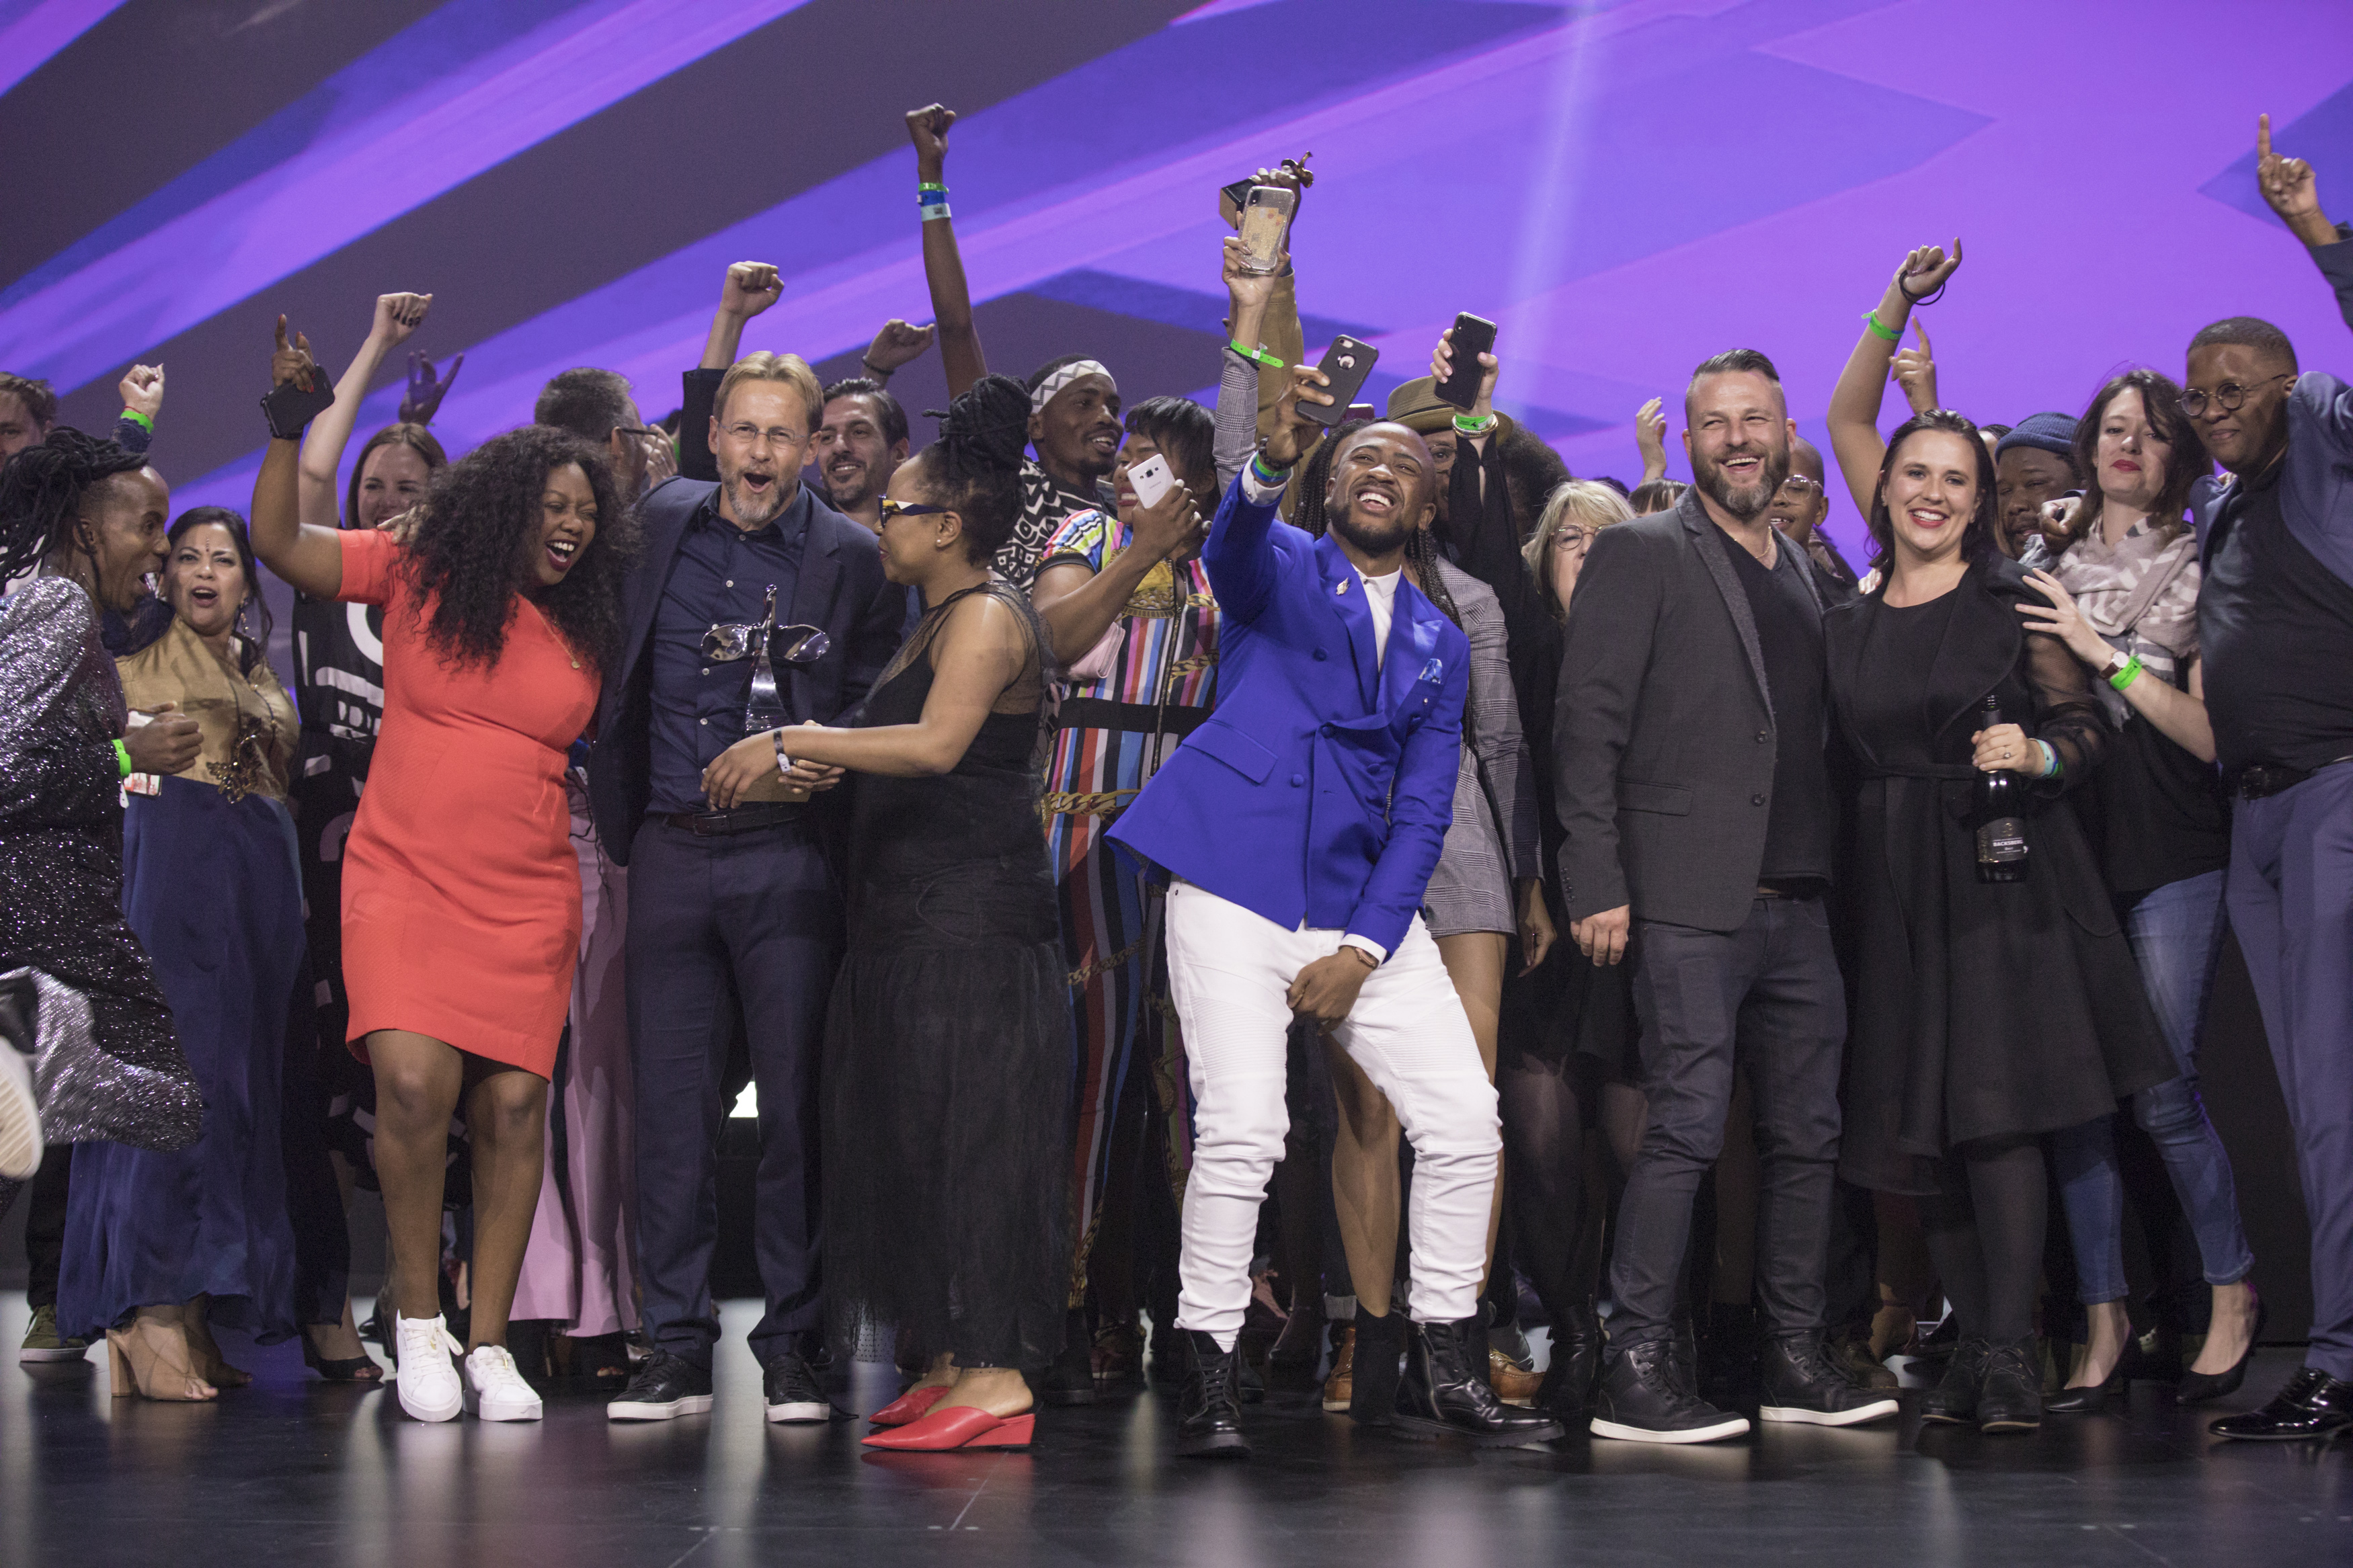 Joe Public Named Agency of the Year for Second Consecutive Year at Loeries